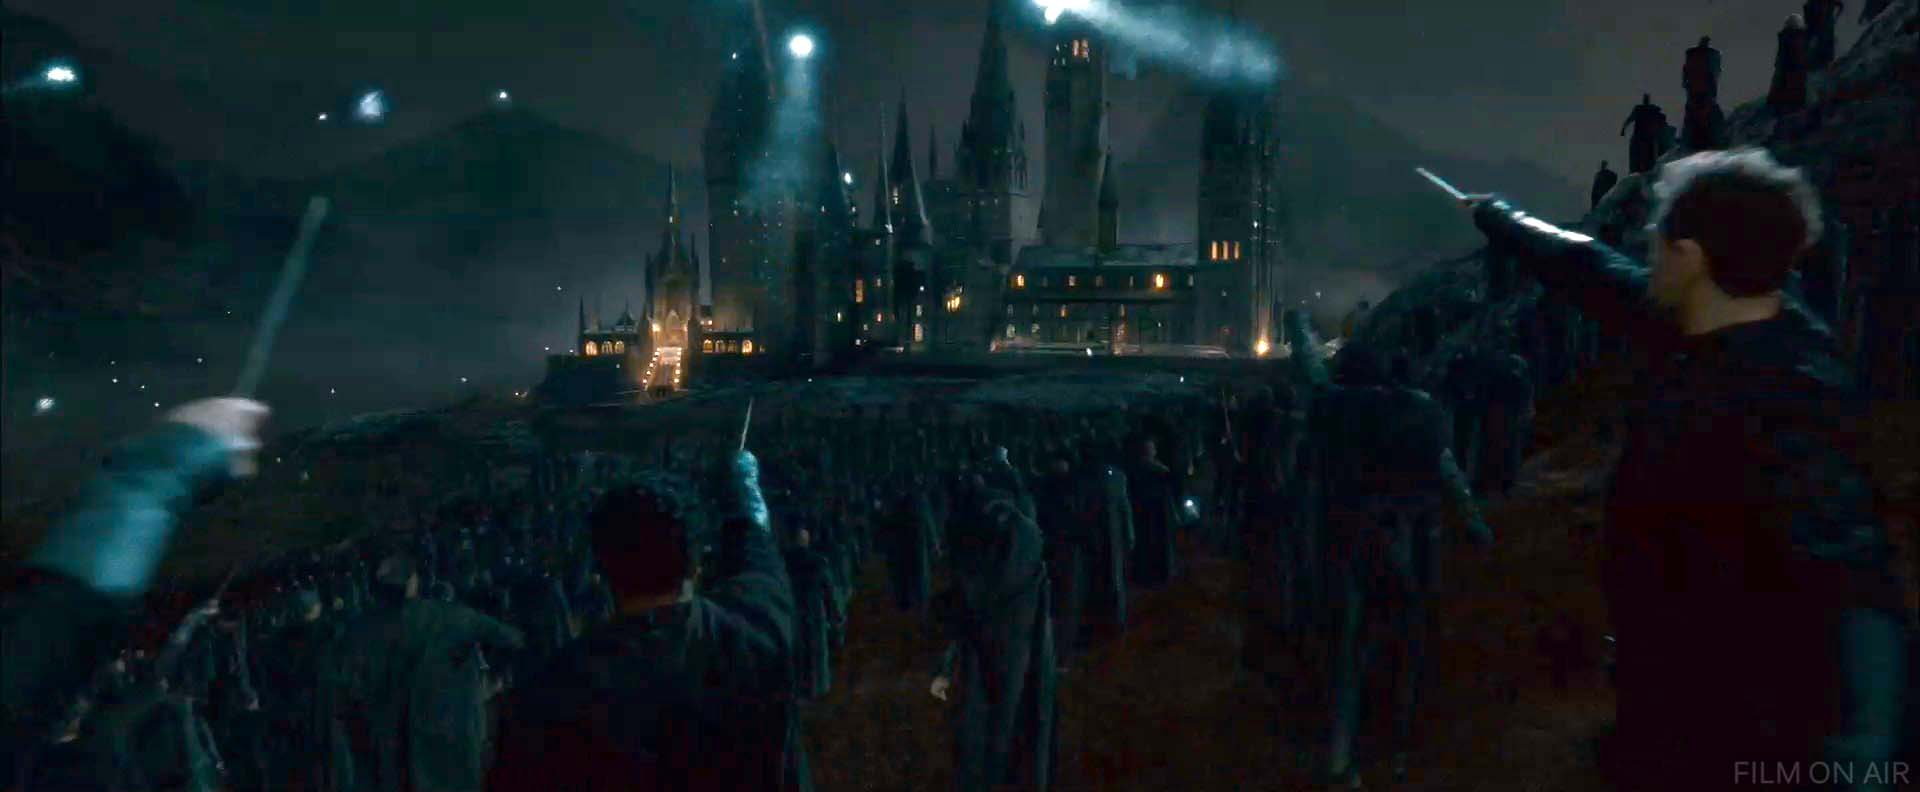 Wands in harry potter and the deathly hallows part 2 cultjer for Harry potter deathly hallows wand